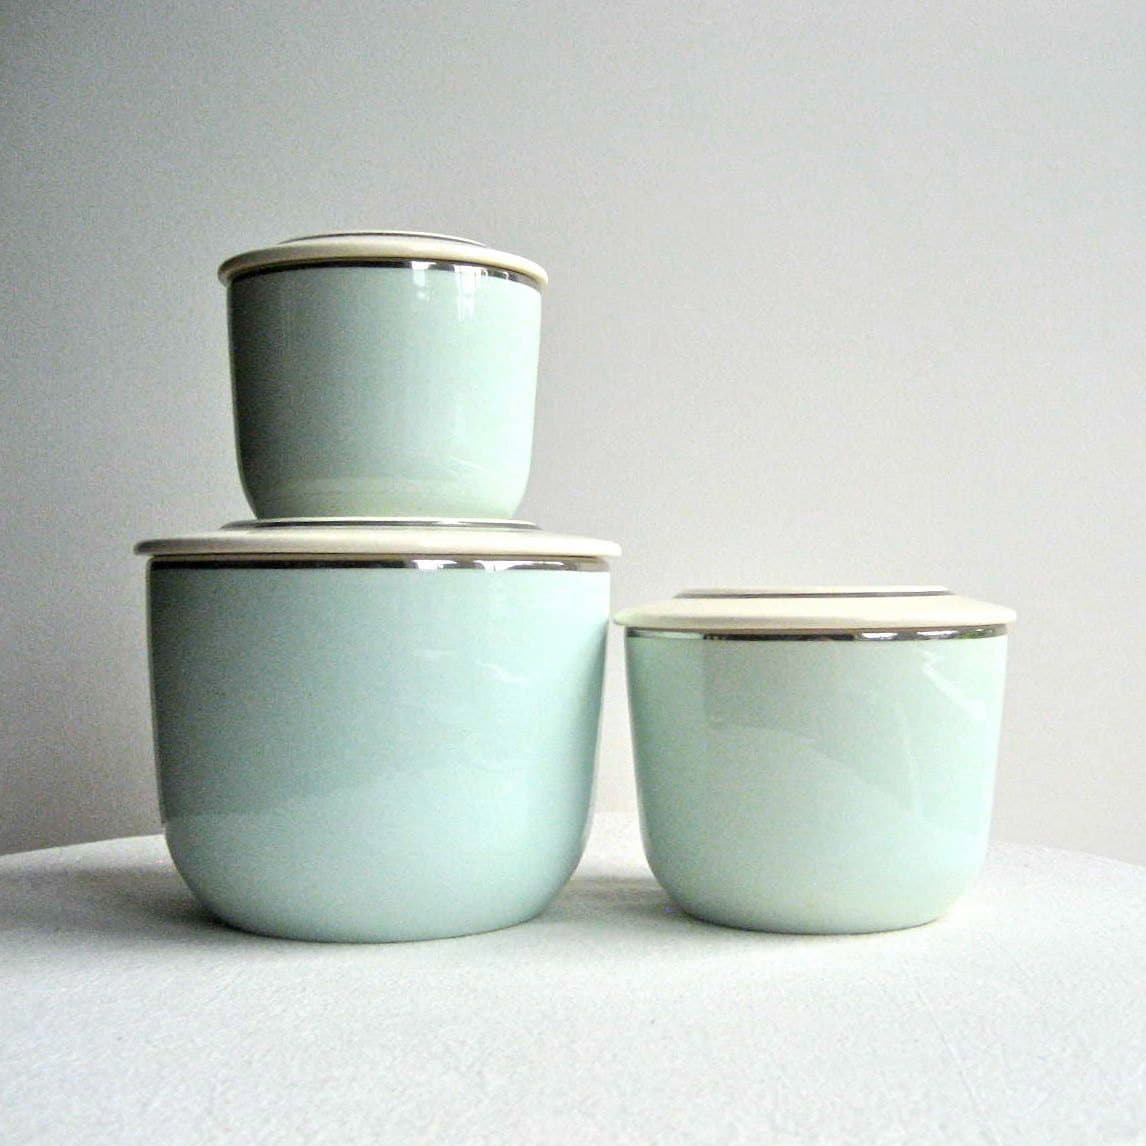 kitchen canisters ceramic craigslist table and chairs set of three ballerina mist in